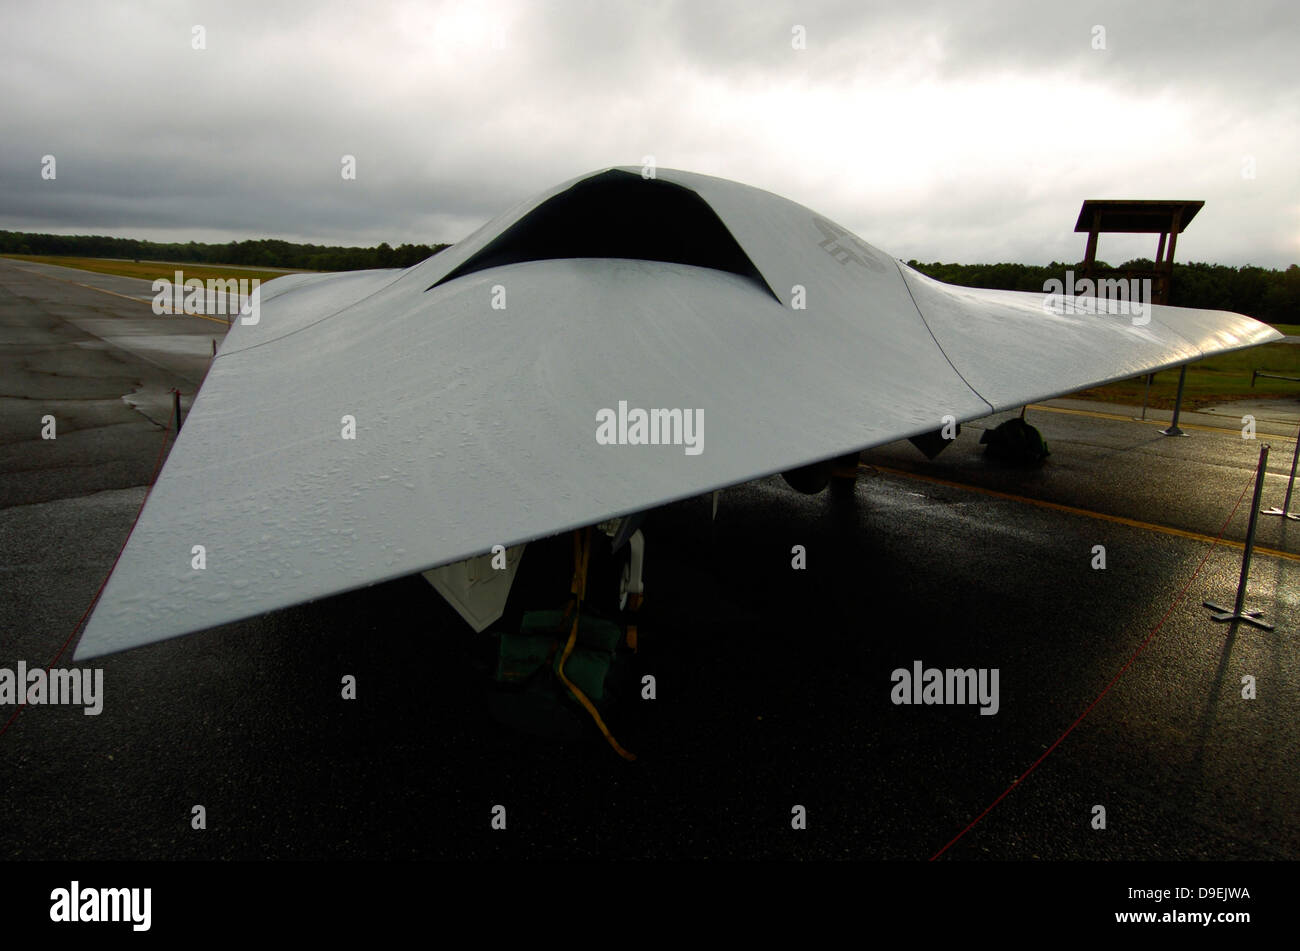 A full scale Joint Unmanned Combat Air Systems X-45C. - Stock Image